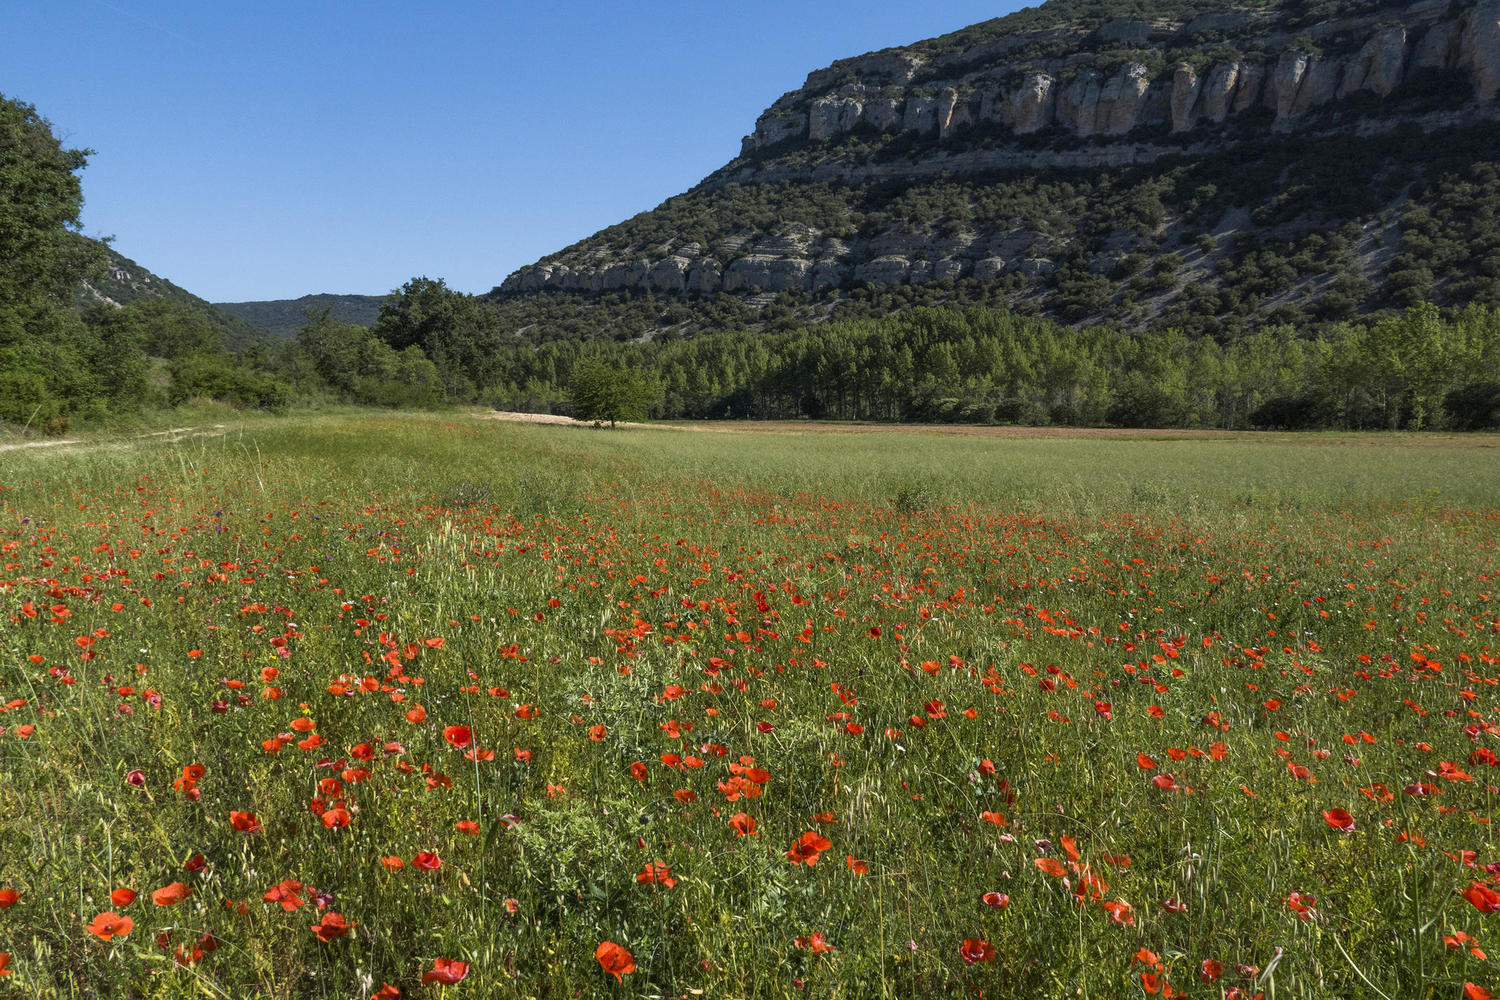 Poppies in the fields of Pesquera del Ebro